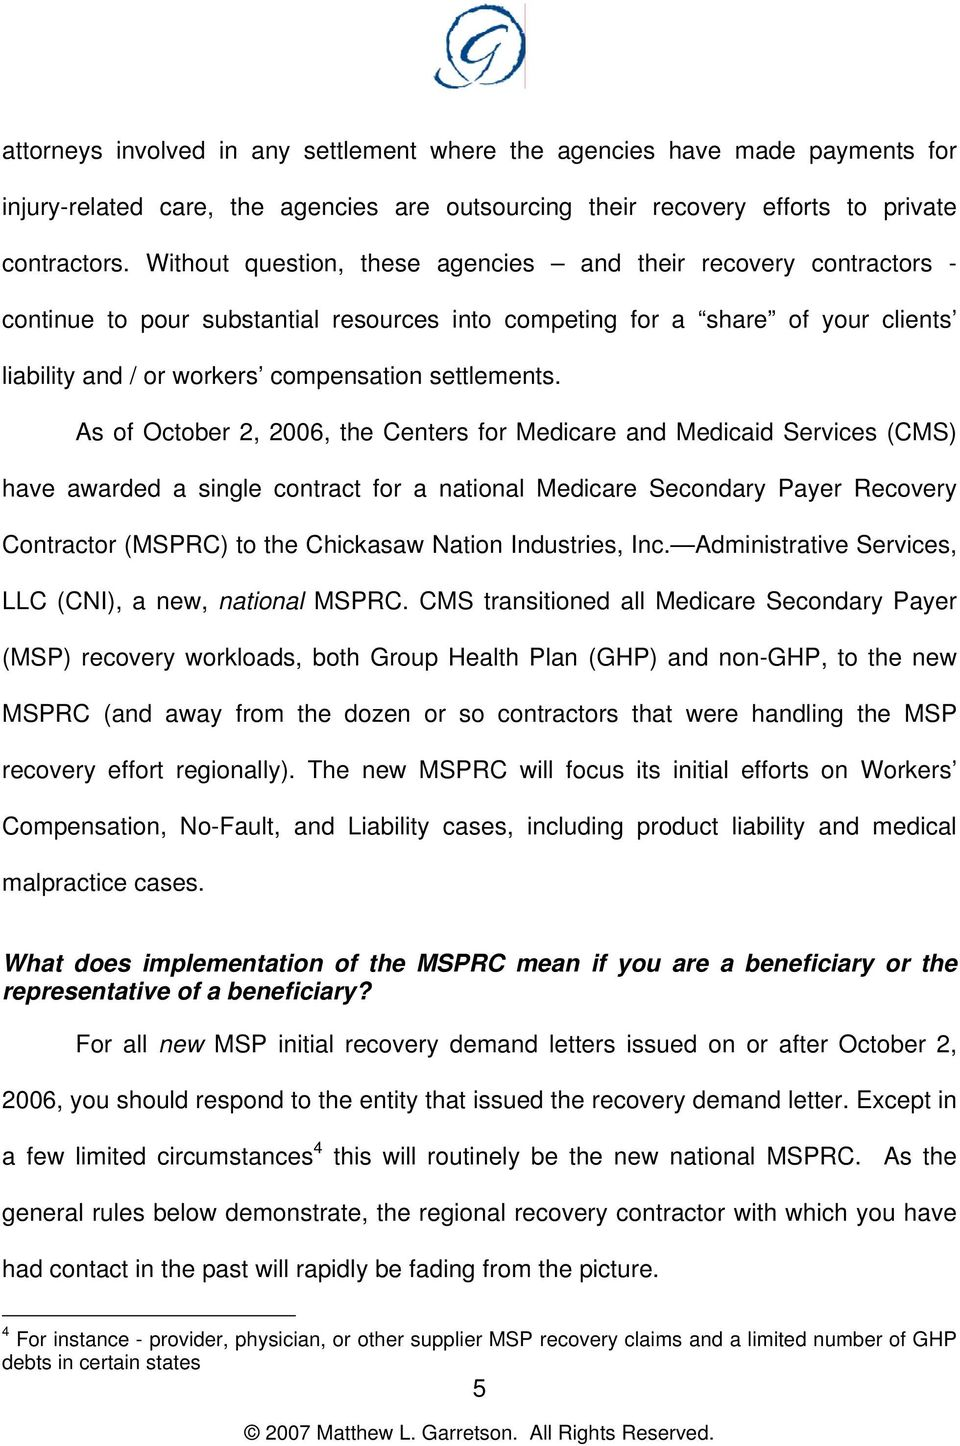 As of October 2, 2006, the Centers for Medicare and Medicaid Services (CMS) have awarded a single contract for a national Medicare Secondary Payer Recovery Contractor (MSPRC) to the Chickasaw Nation